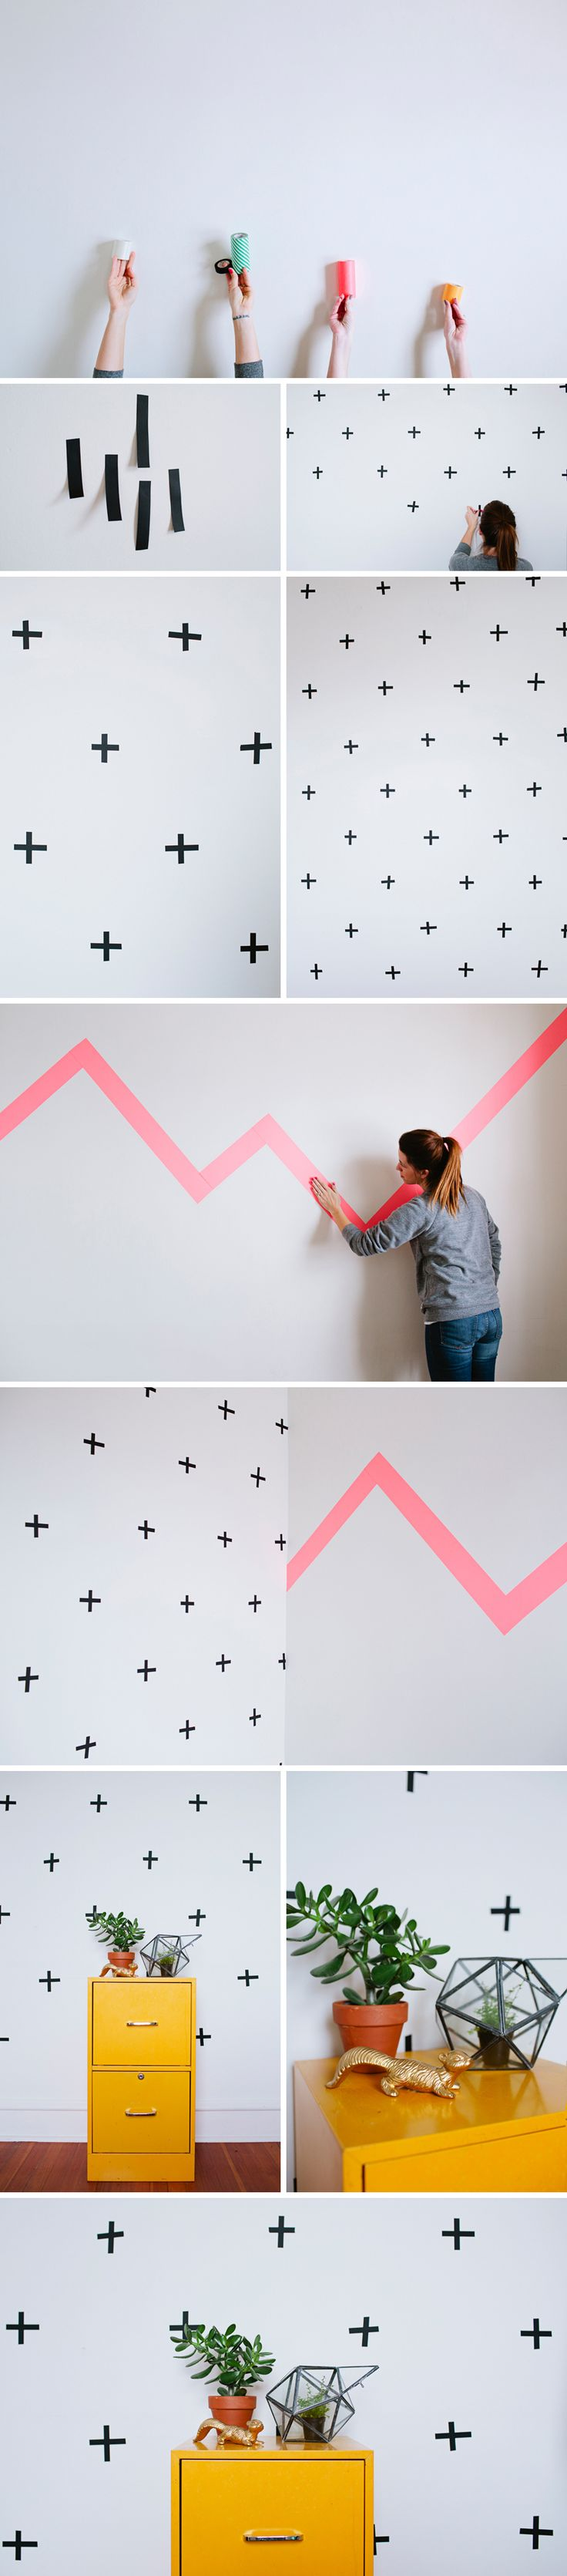 This DIY is super easy and super awesome. All you need is some Washi Tape and a wall and you are good to go! We sell 15mm, 50mm, and 100mm at the store in a crazy amount of colors and patterns! The possibilities are endless! Supply List: + washi tape + empty wall! 1. Clear out and wipe down the wall you'd like to use. I'd suggest testing a piece of tape on your wall prior to taping your entire wall. Sometimes certain colors don't stick to certain walls. You won't know until you try it. 2…